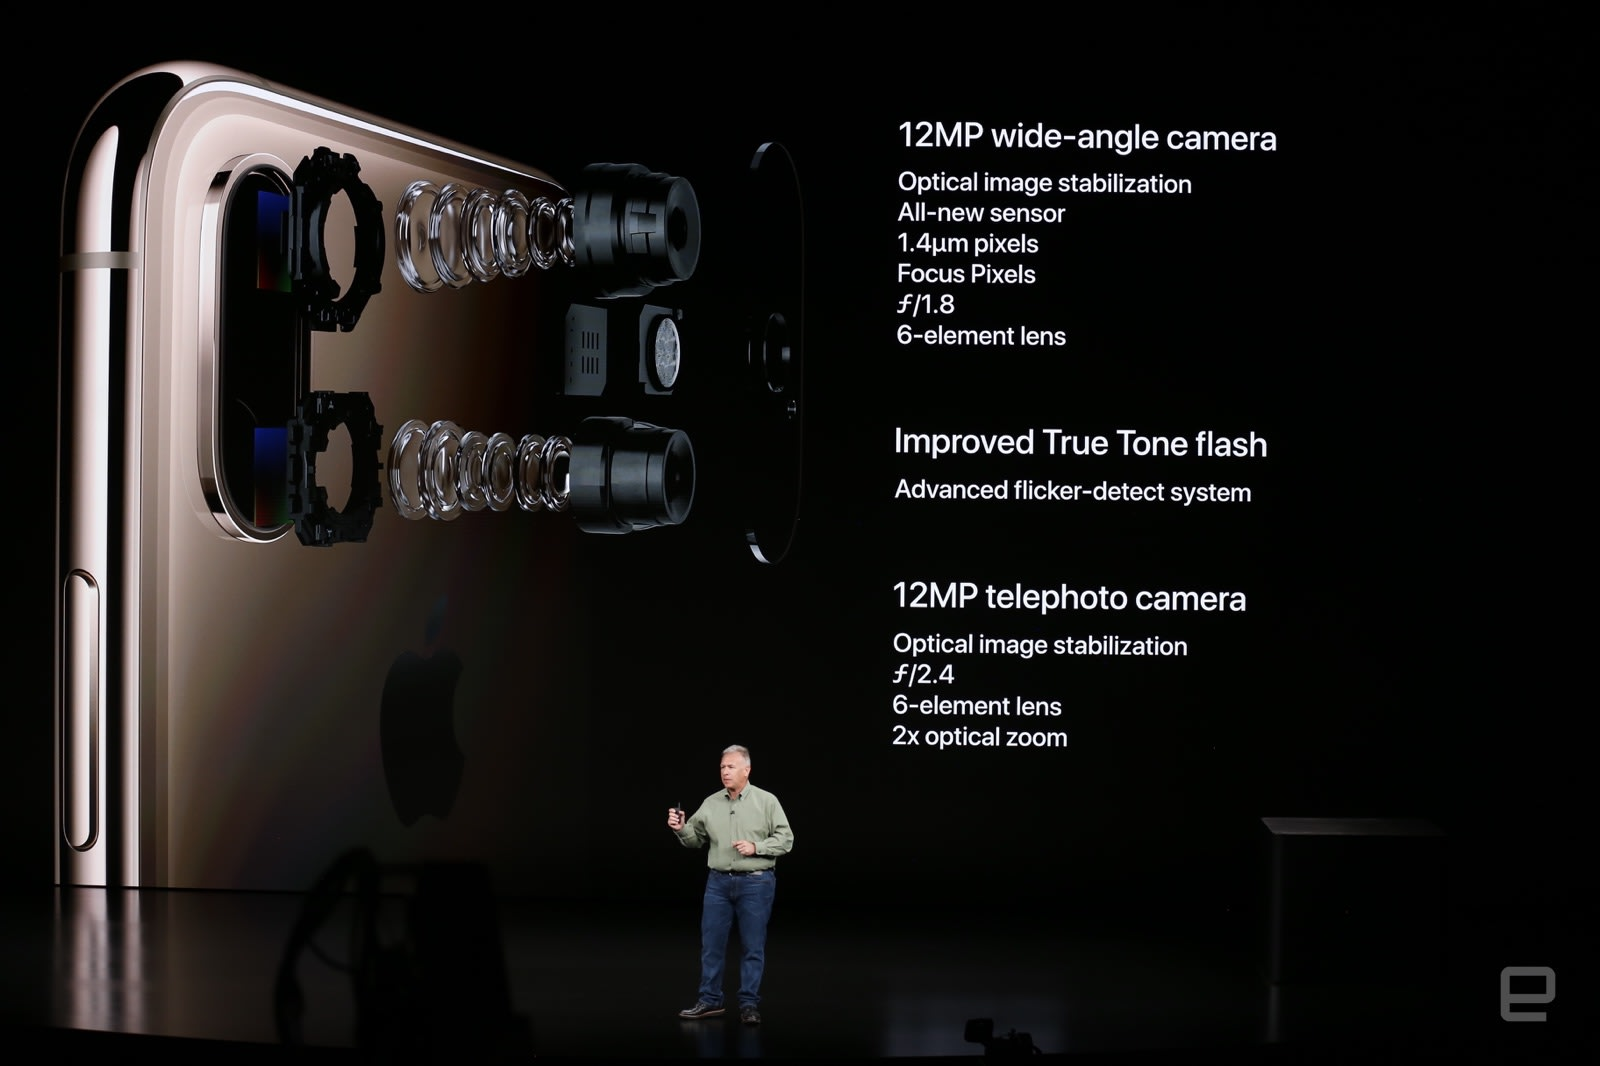 The iPhone Xs adjusts depth-of-field on your photos after the fact